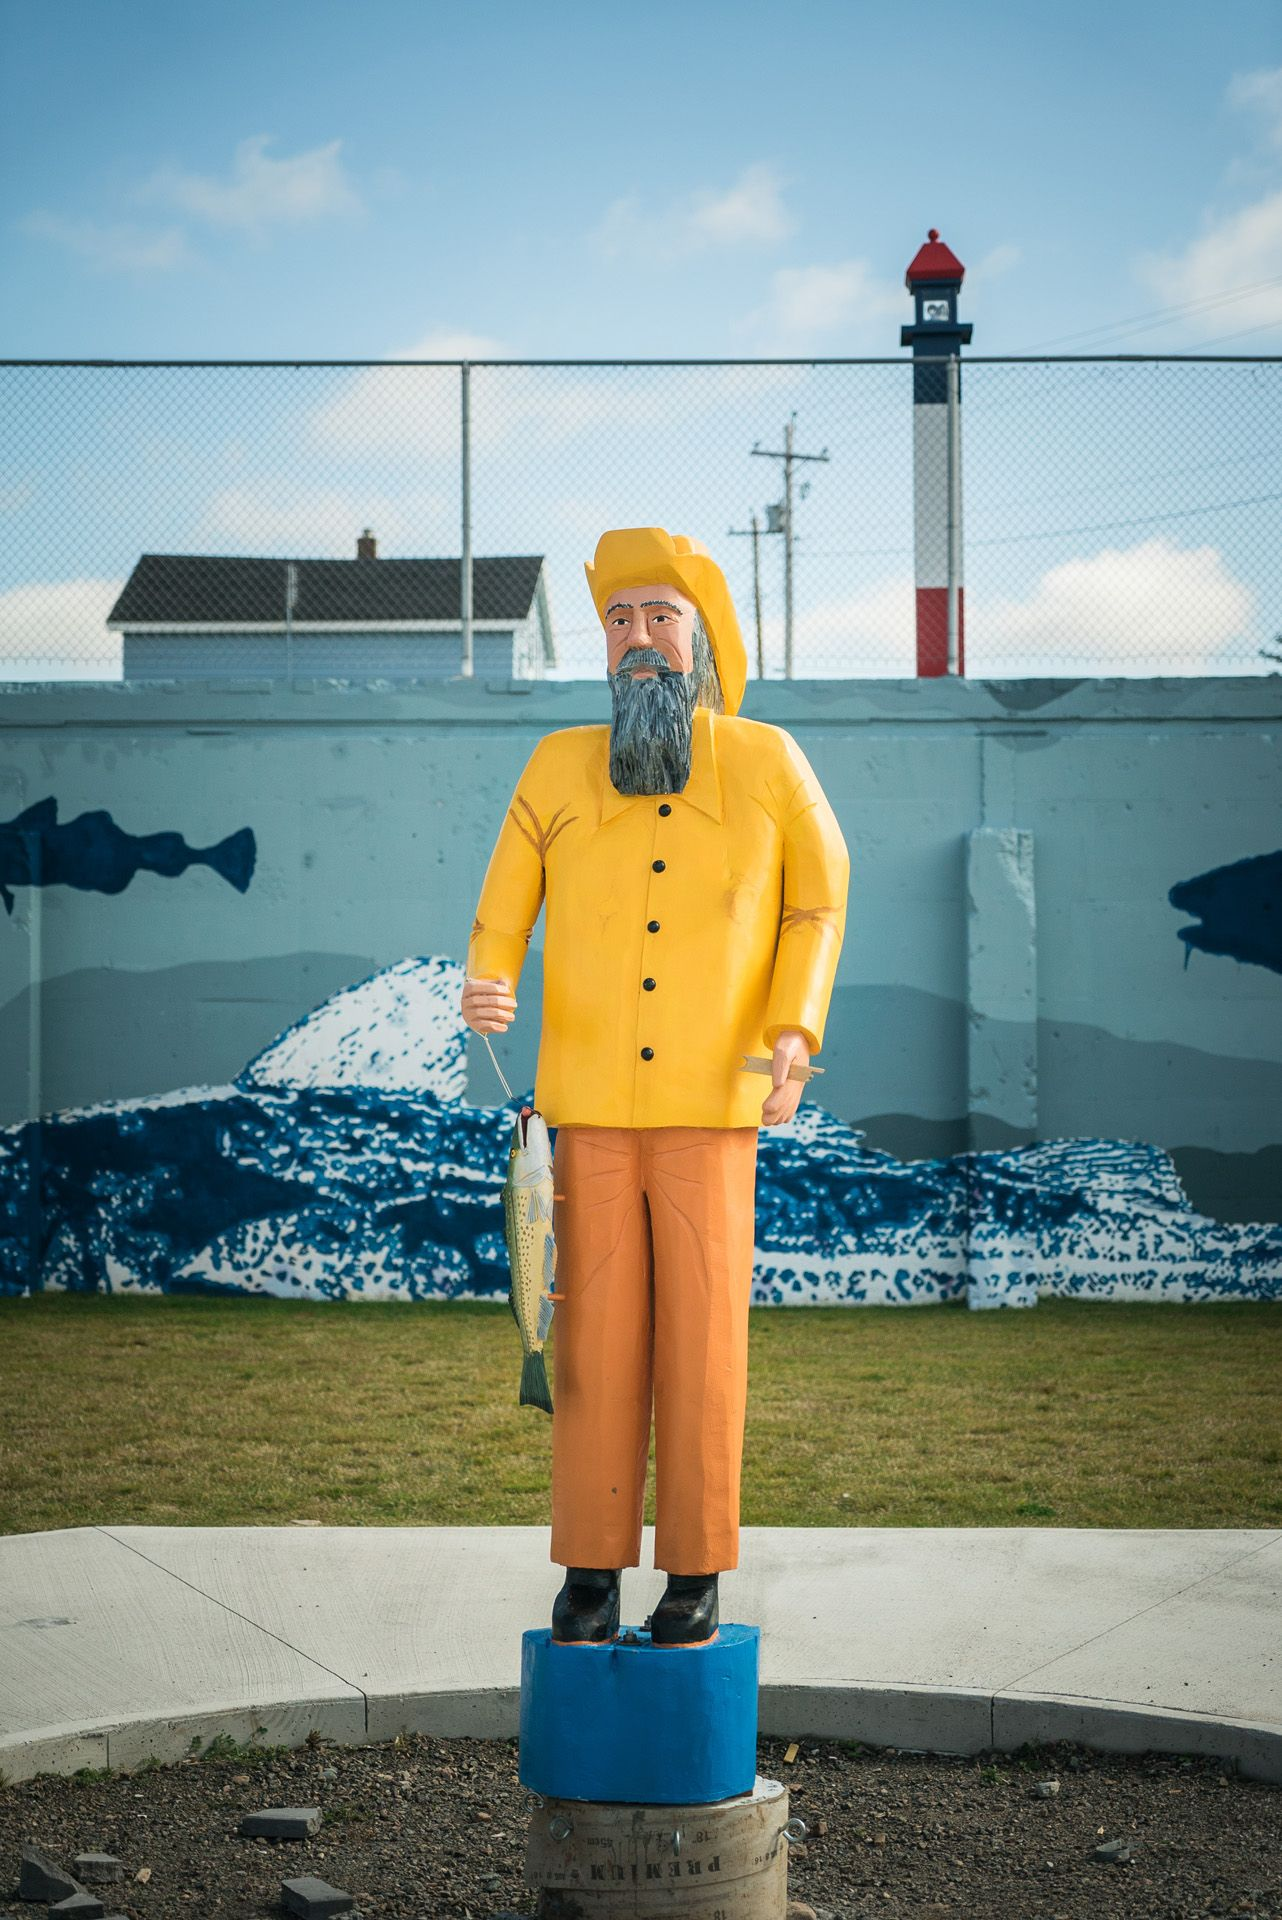 wooden and painted fisherman statue by Bruno Florin for Mercedes Magazine